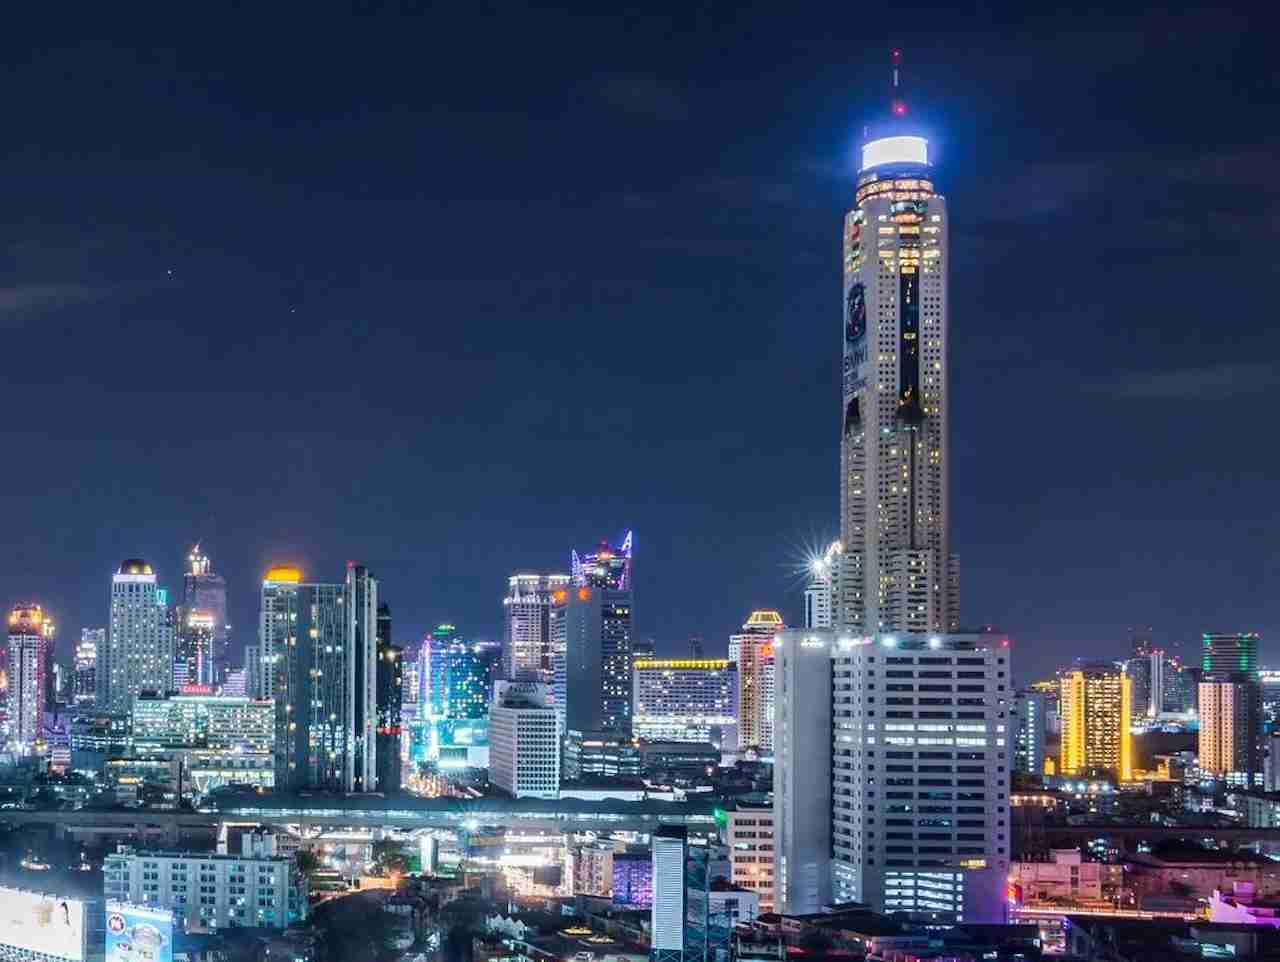 Baiyoke Sky Hotel in Bangkok Thailand. Photo courtesy of Baiyoke Sky Hotel.